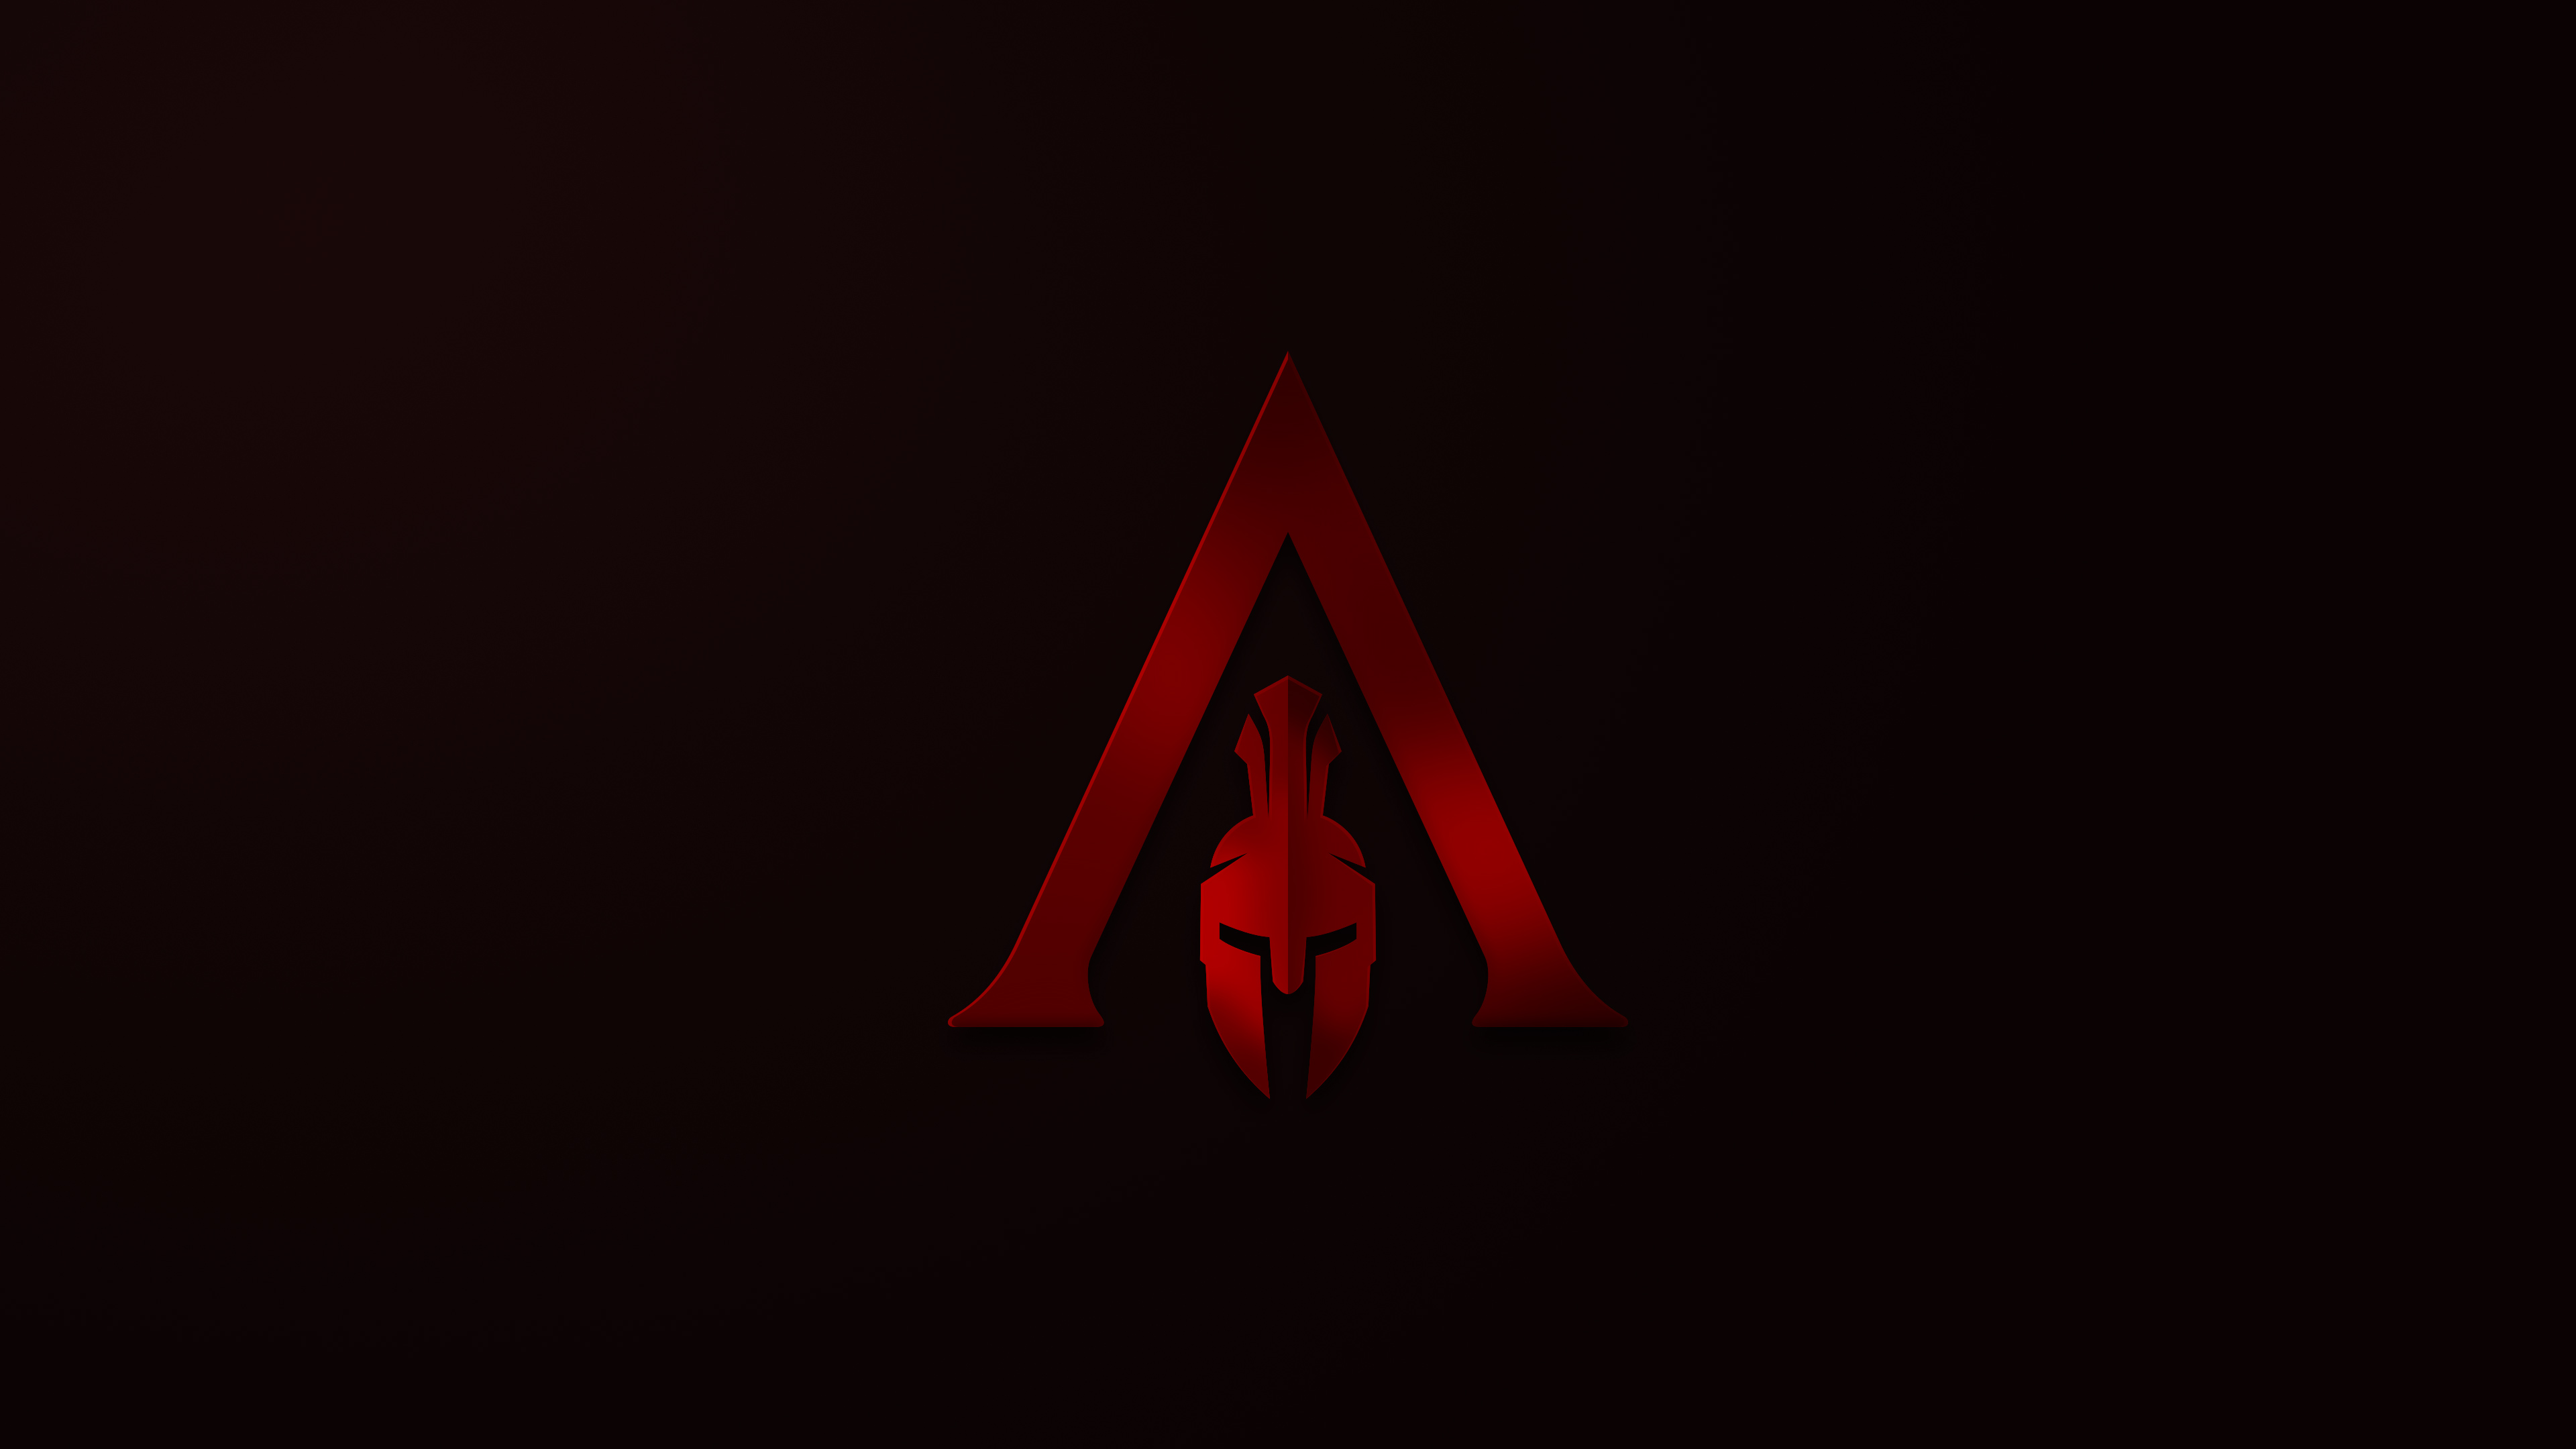 Assassin S Creed Odyssey 4k Ultra Hd Wallpaper Background Image